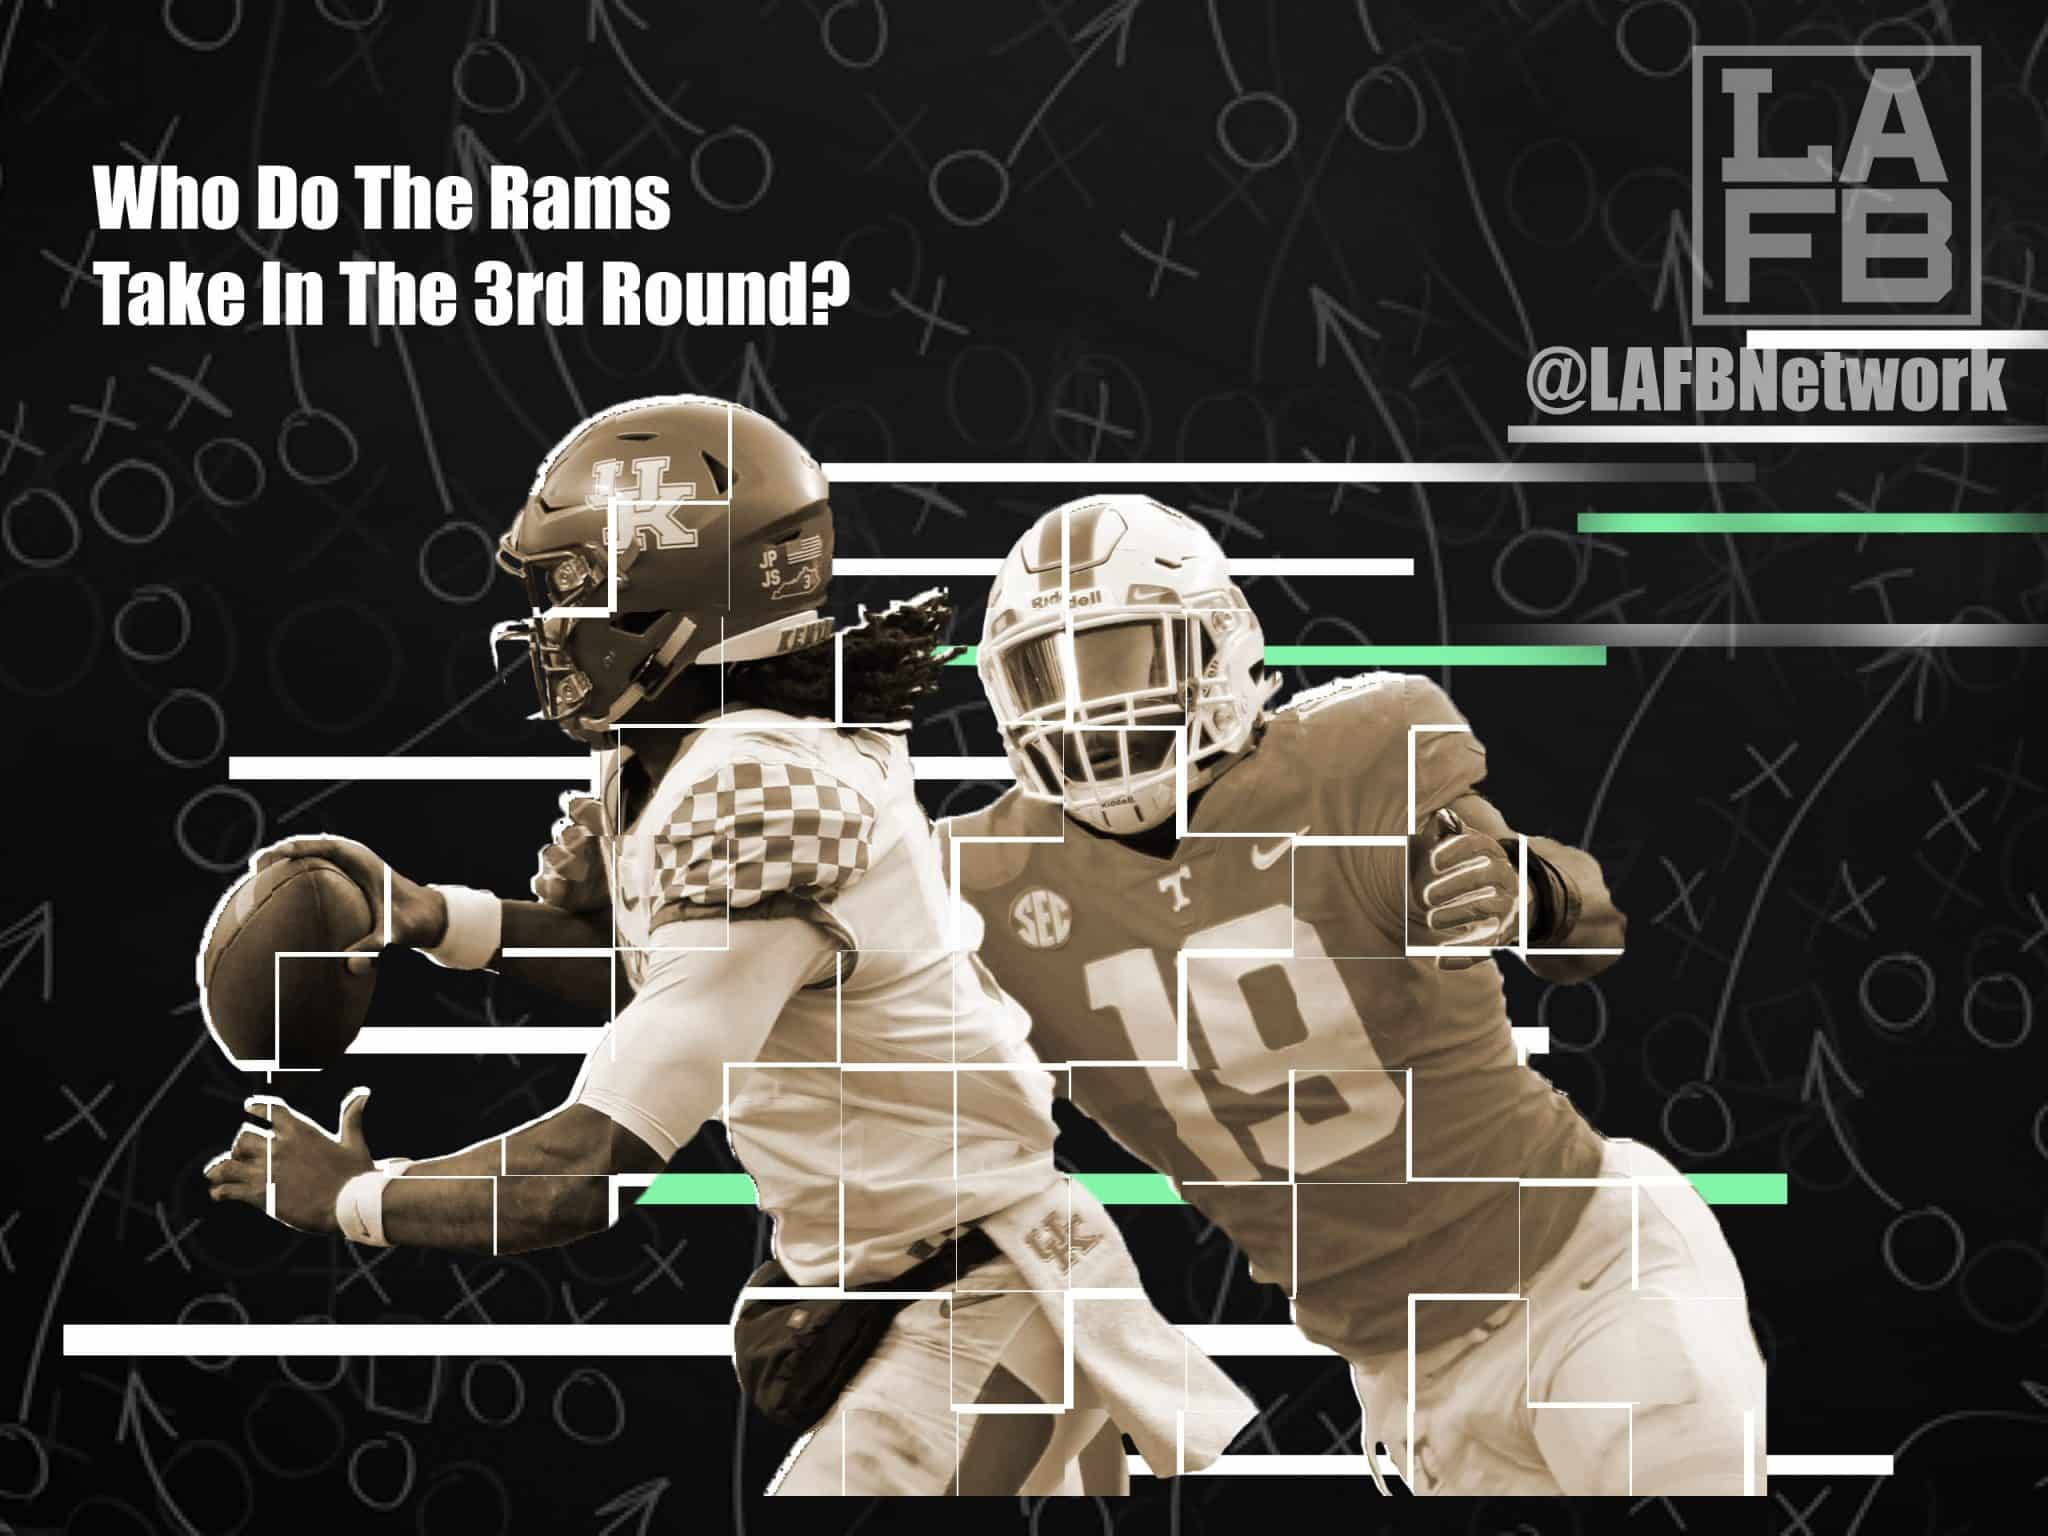 Who Should The Rams Take In The 3rd Round? Here's 3 Different Scenarios